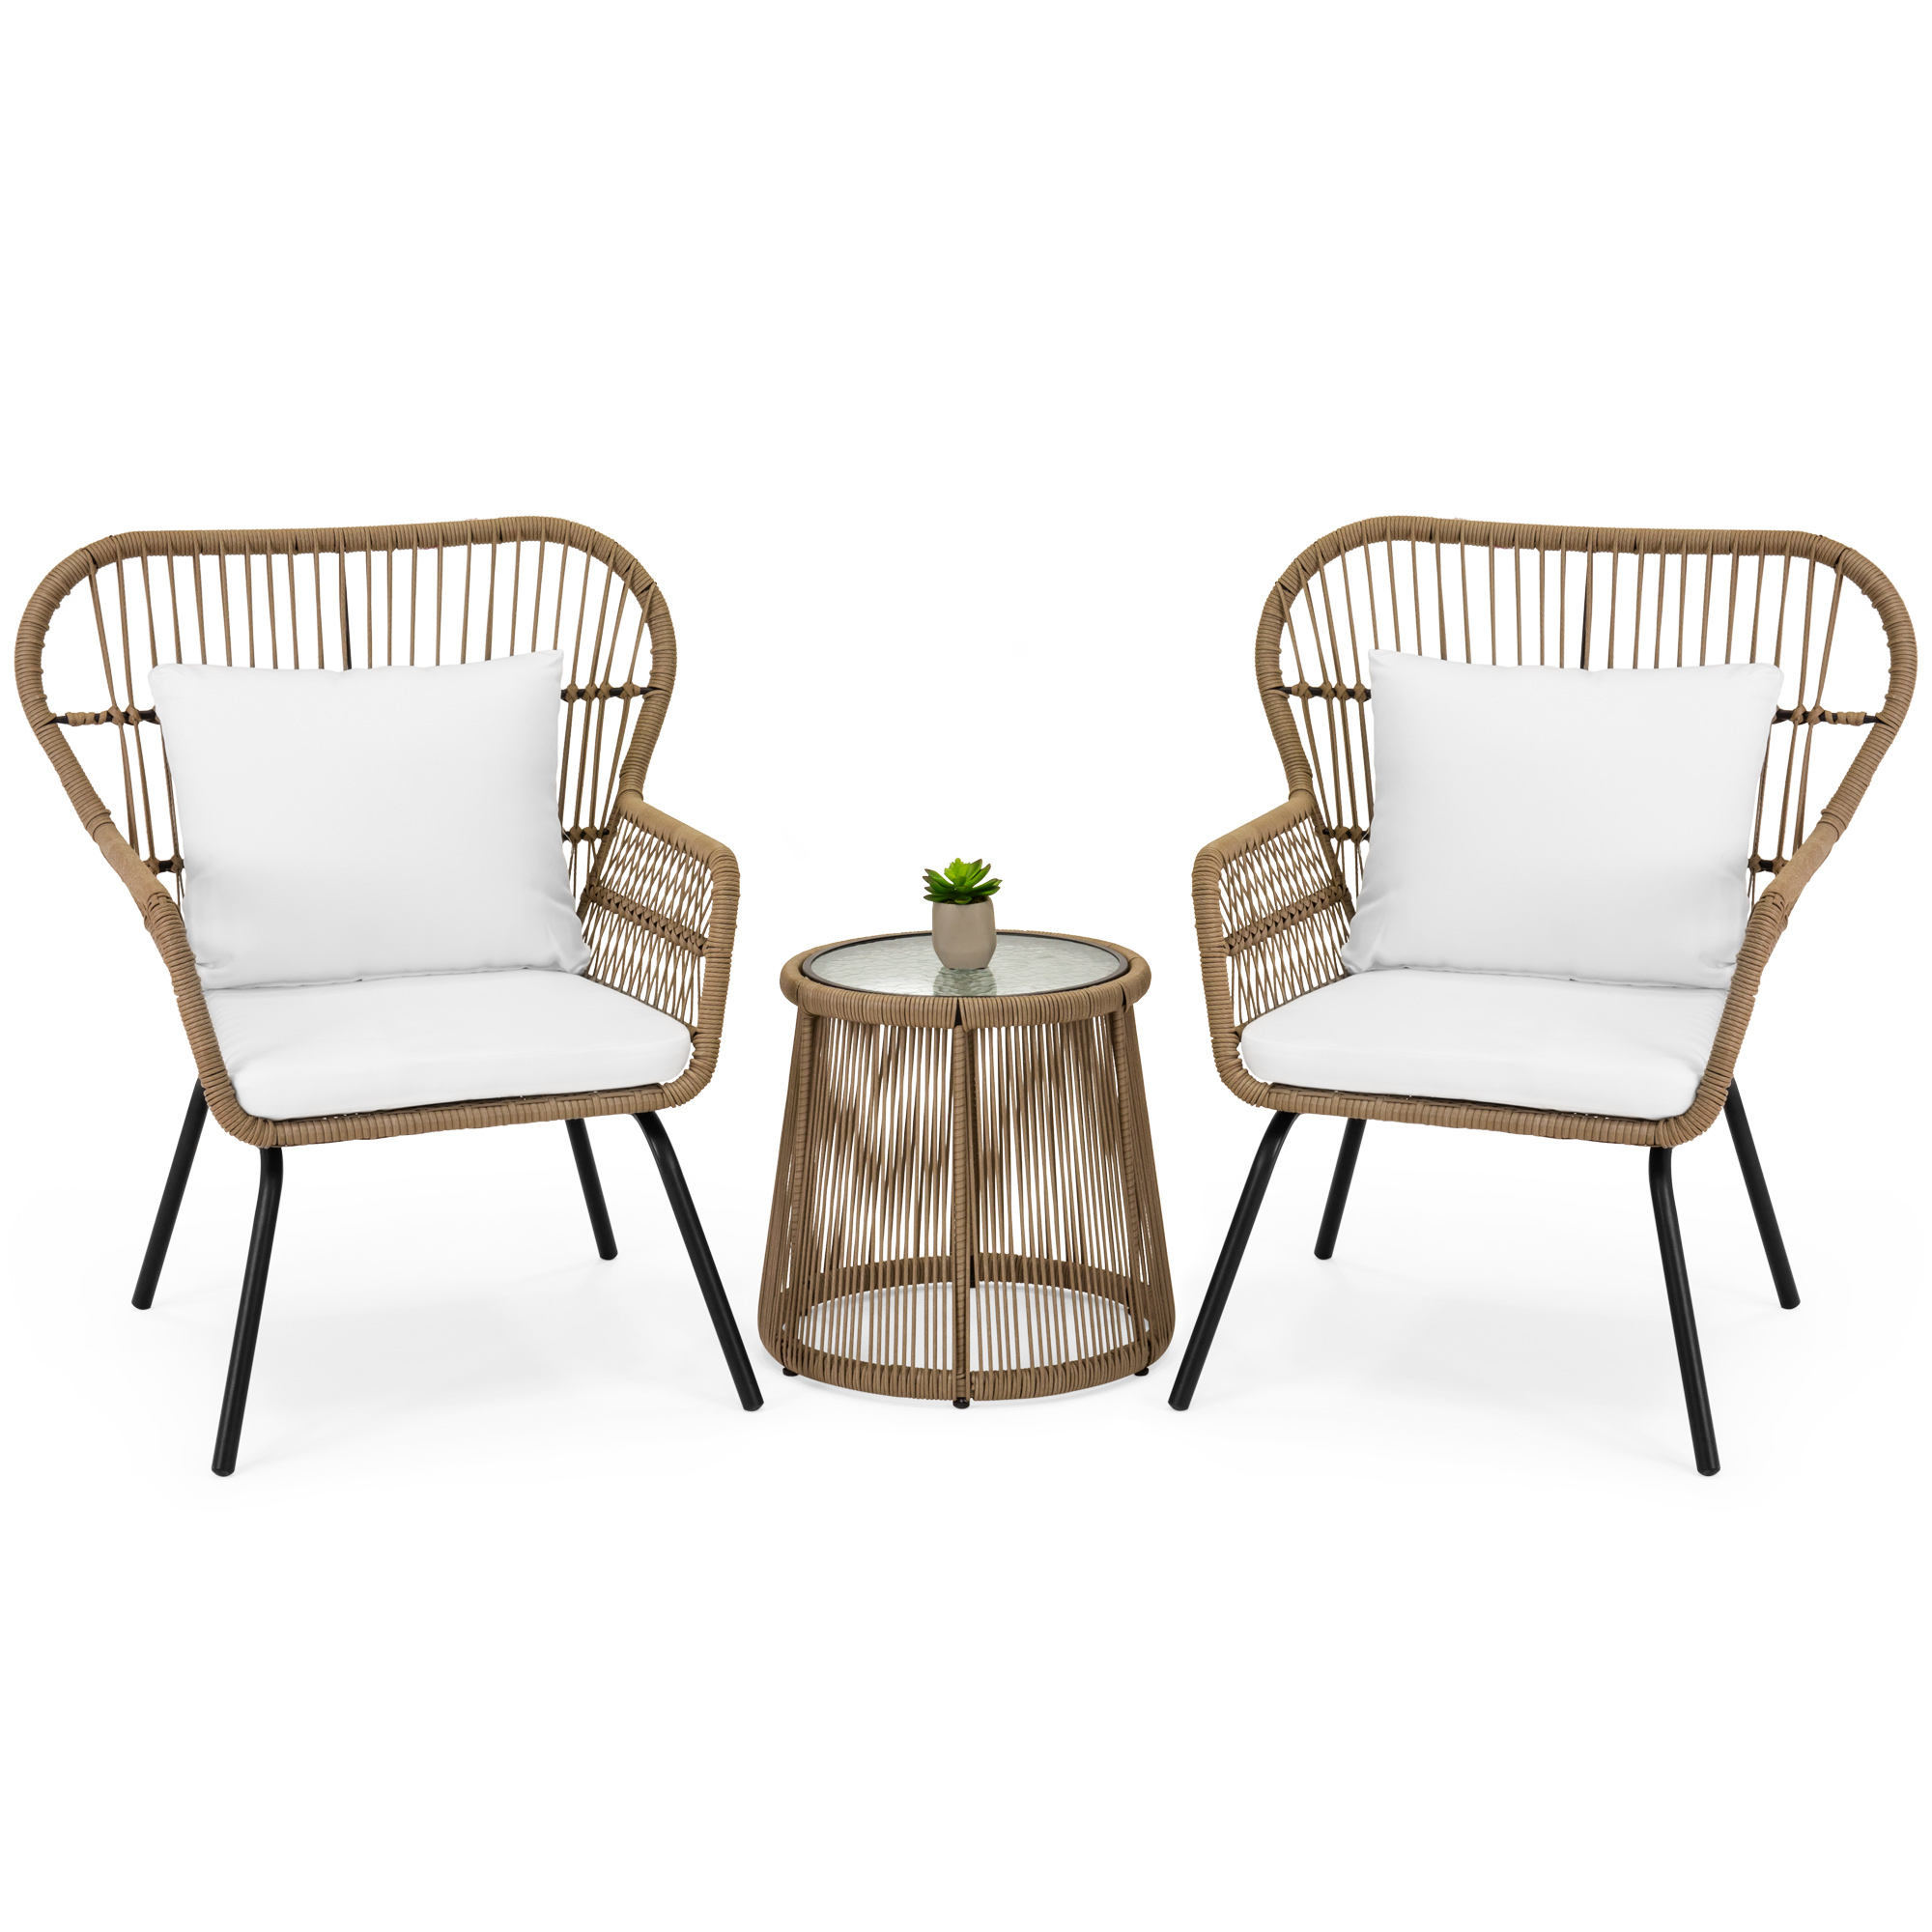 3 Piece Patio Lounger Sets Within Well Known Best Choice Products 3 Piece Patio Wicker Conversation Bistro Set W/ 2  Chairs, Glass Top Side Table, Cushions – Tan (View 8 of 25)